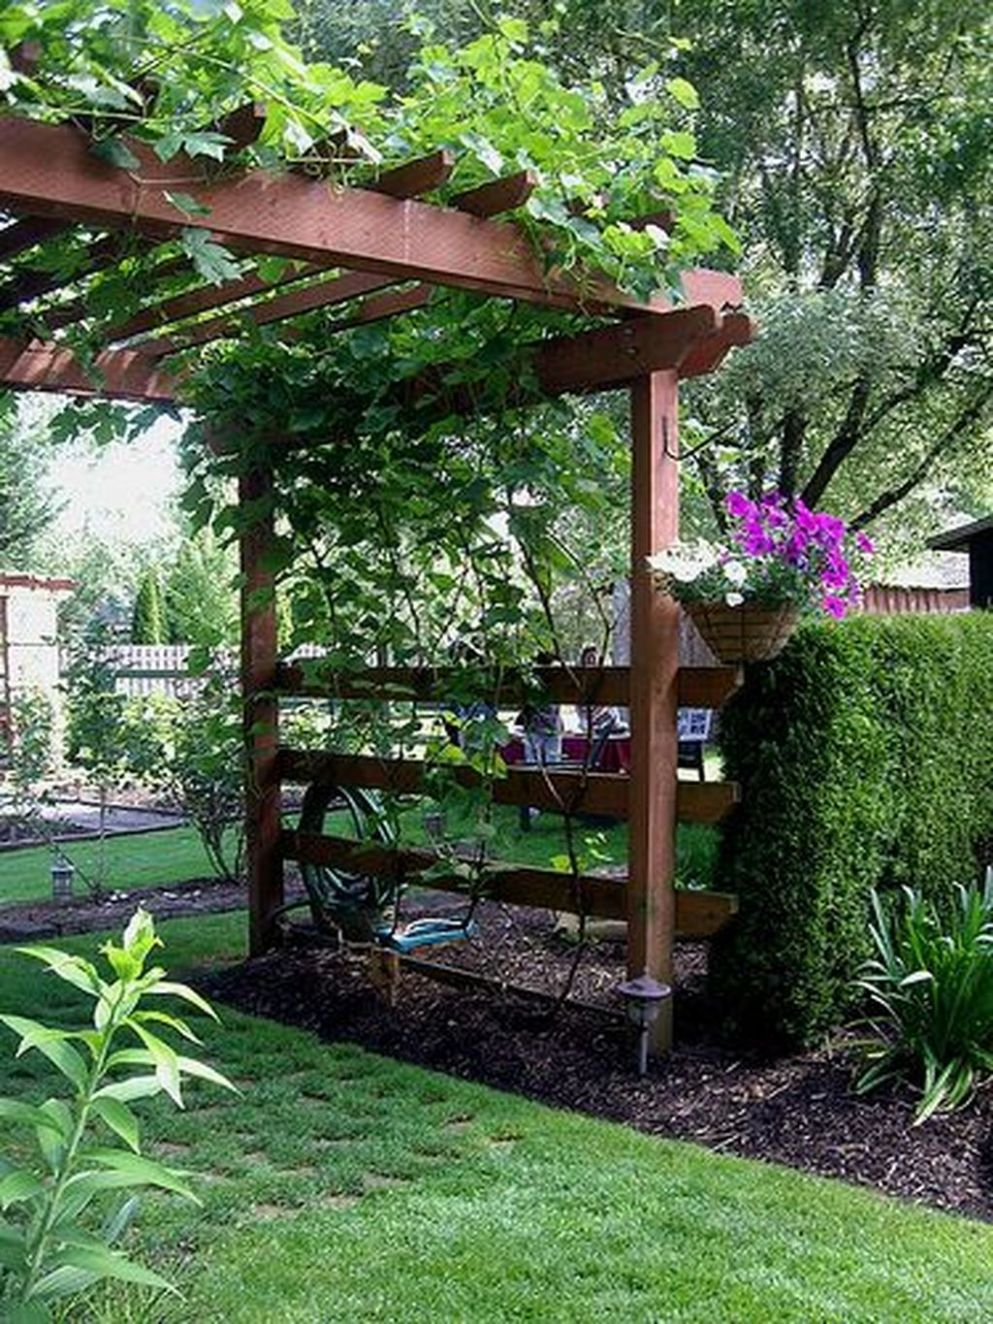 12 Inspiring Grape Vine Ideas To Beautify Your Garden | Cottage ...